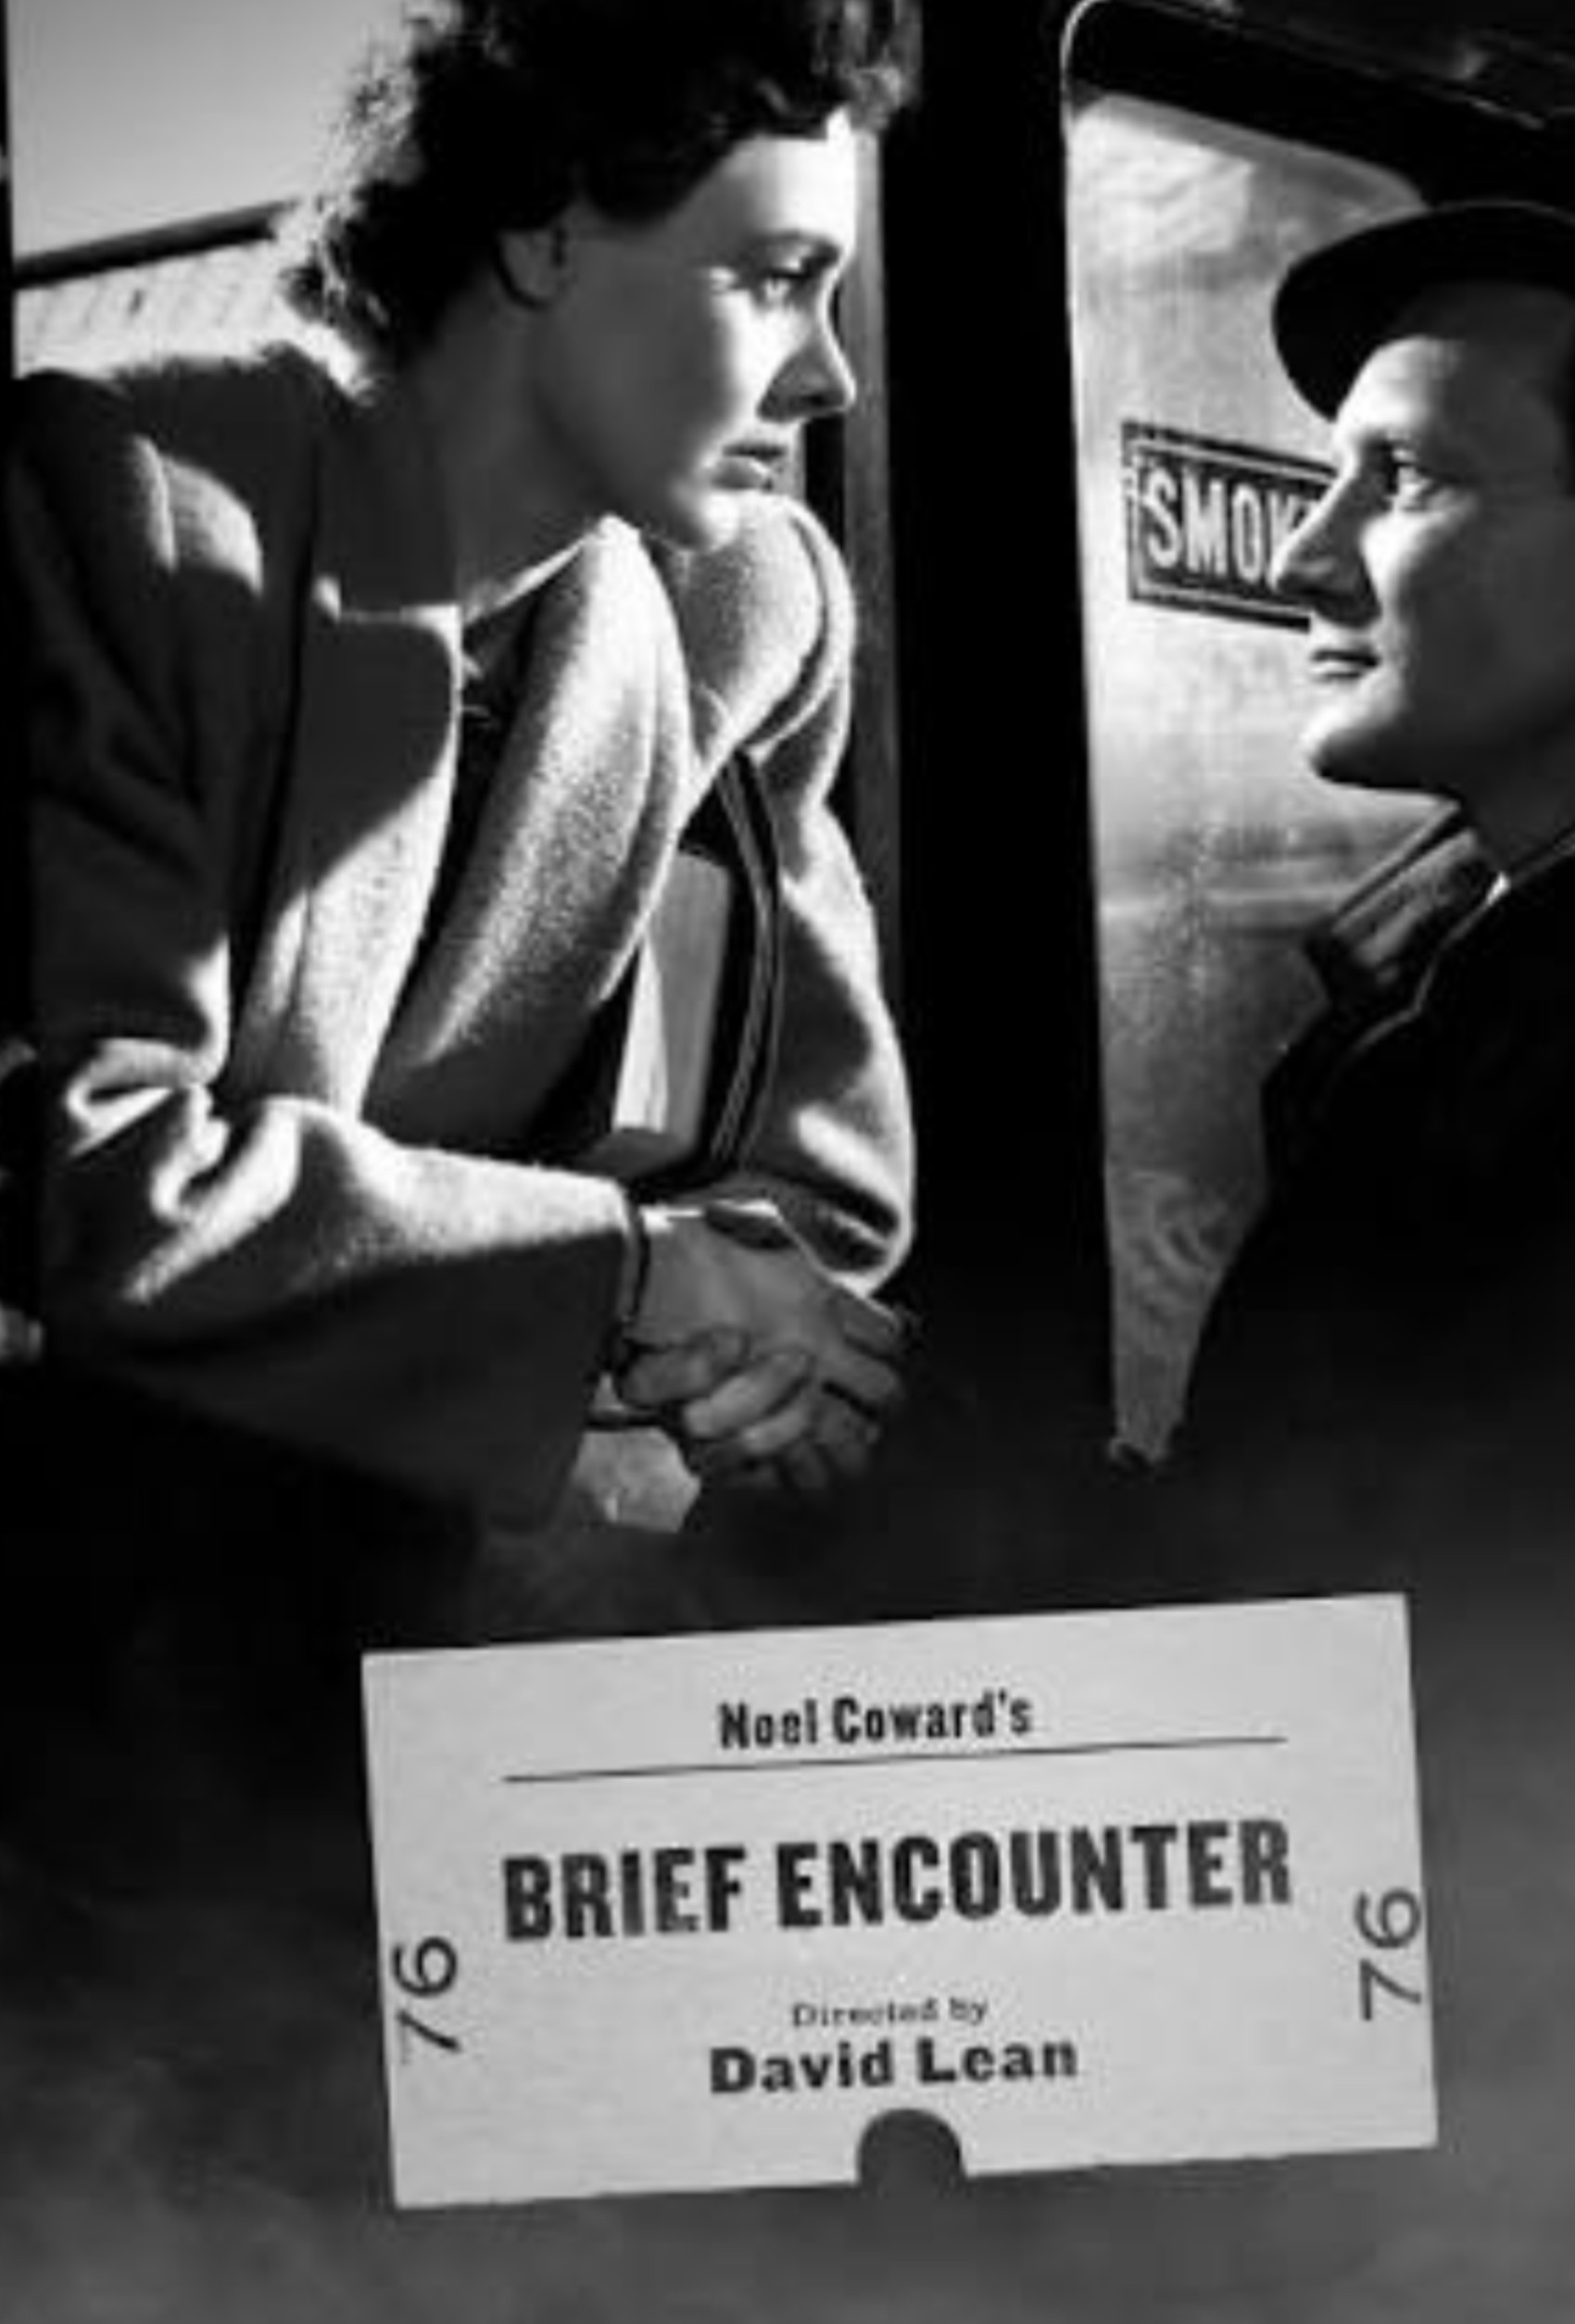 Image is a poster of the movie Brief Encounter. It shows a woman in a train window gazing into the eyes of a man standing on the station's platform.